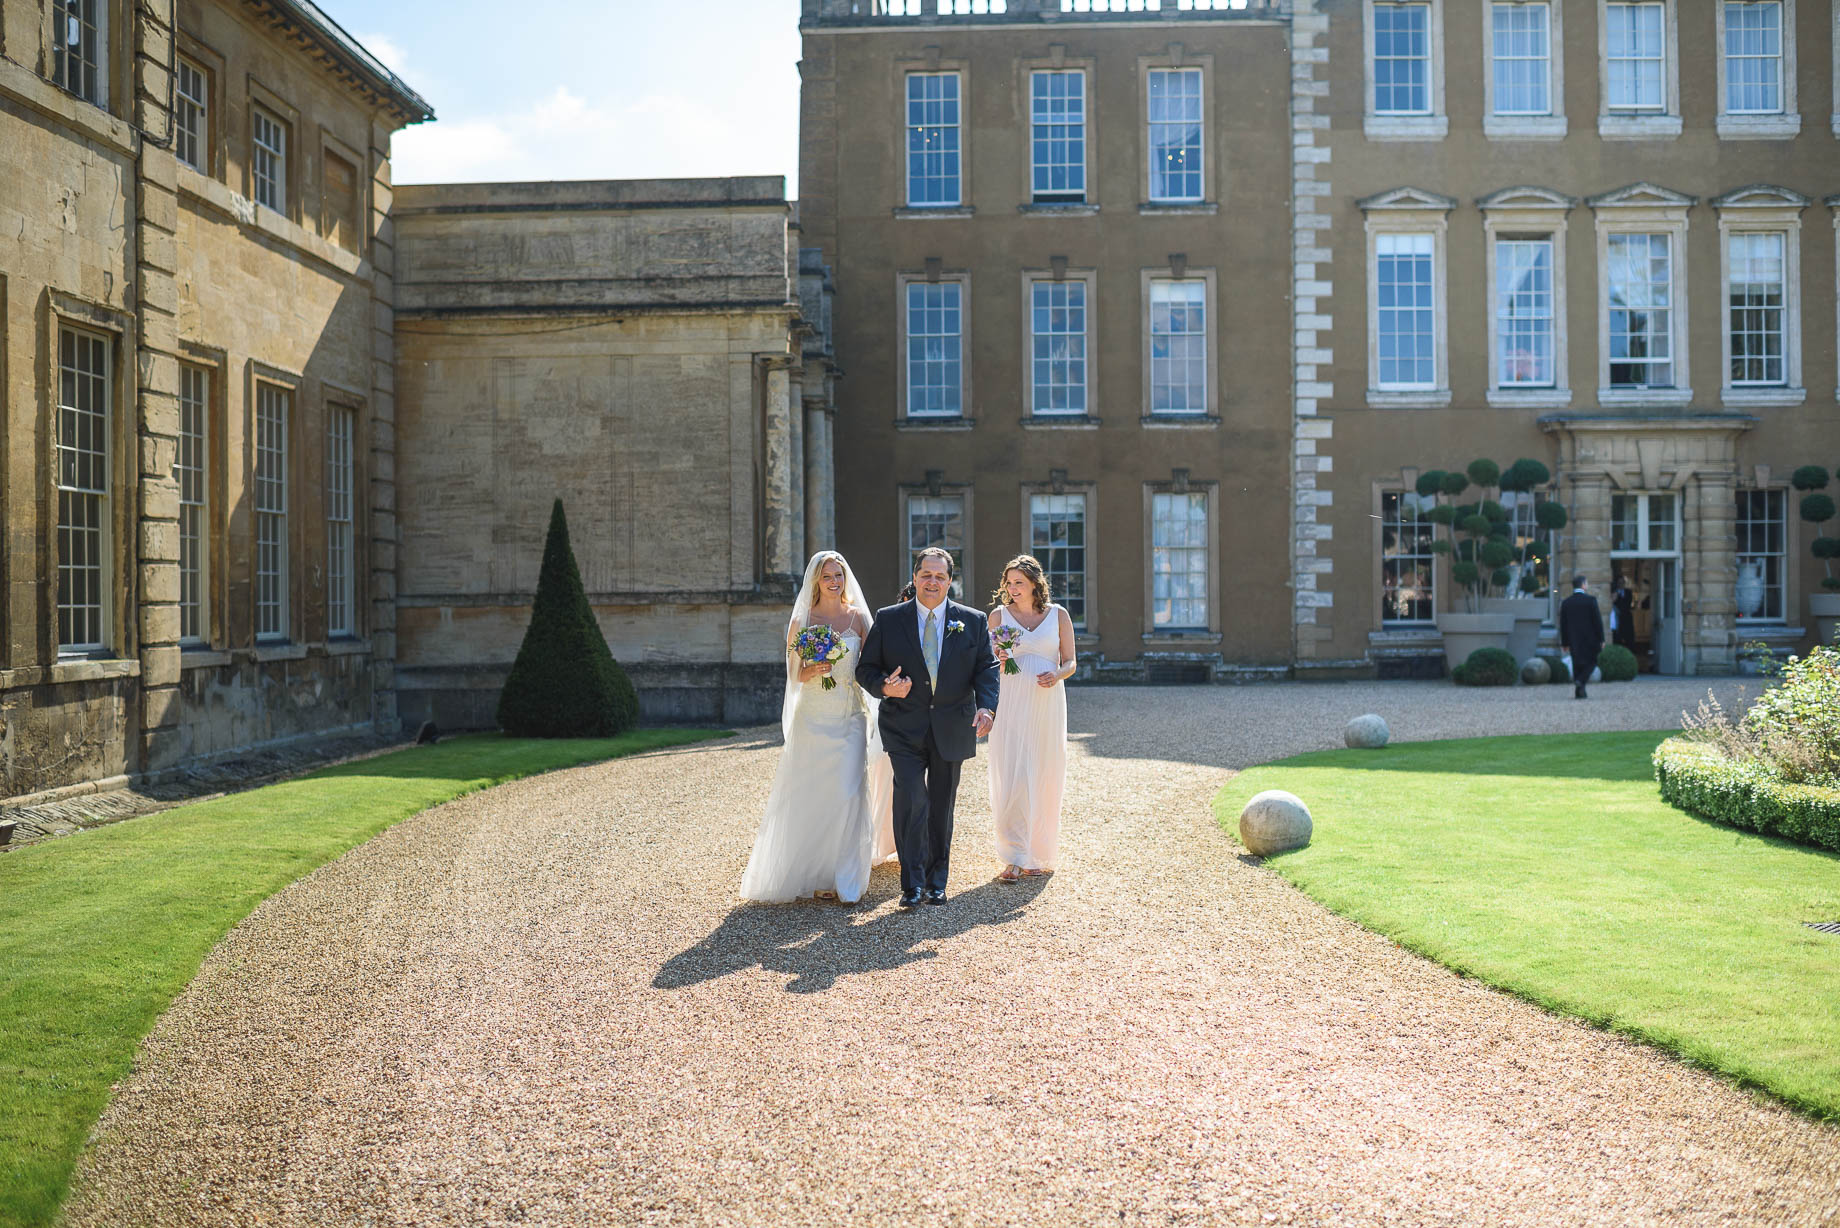 Aynhoe Park wedding photography - Guy Collier - Becky and Nick (93 of 233)